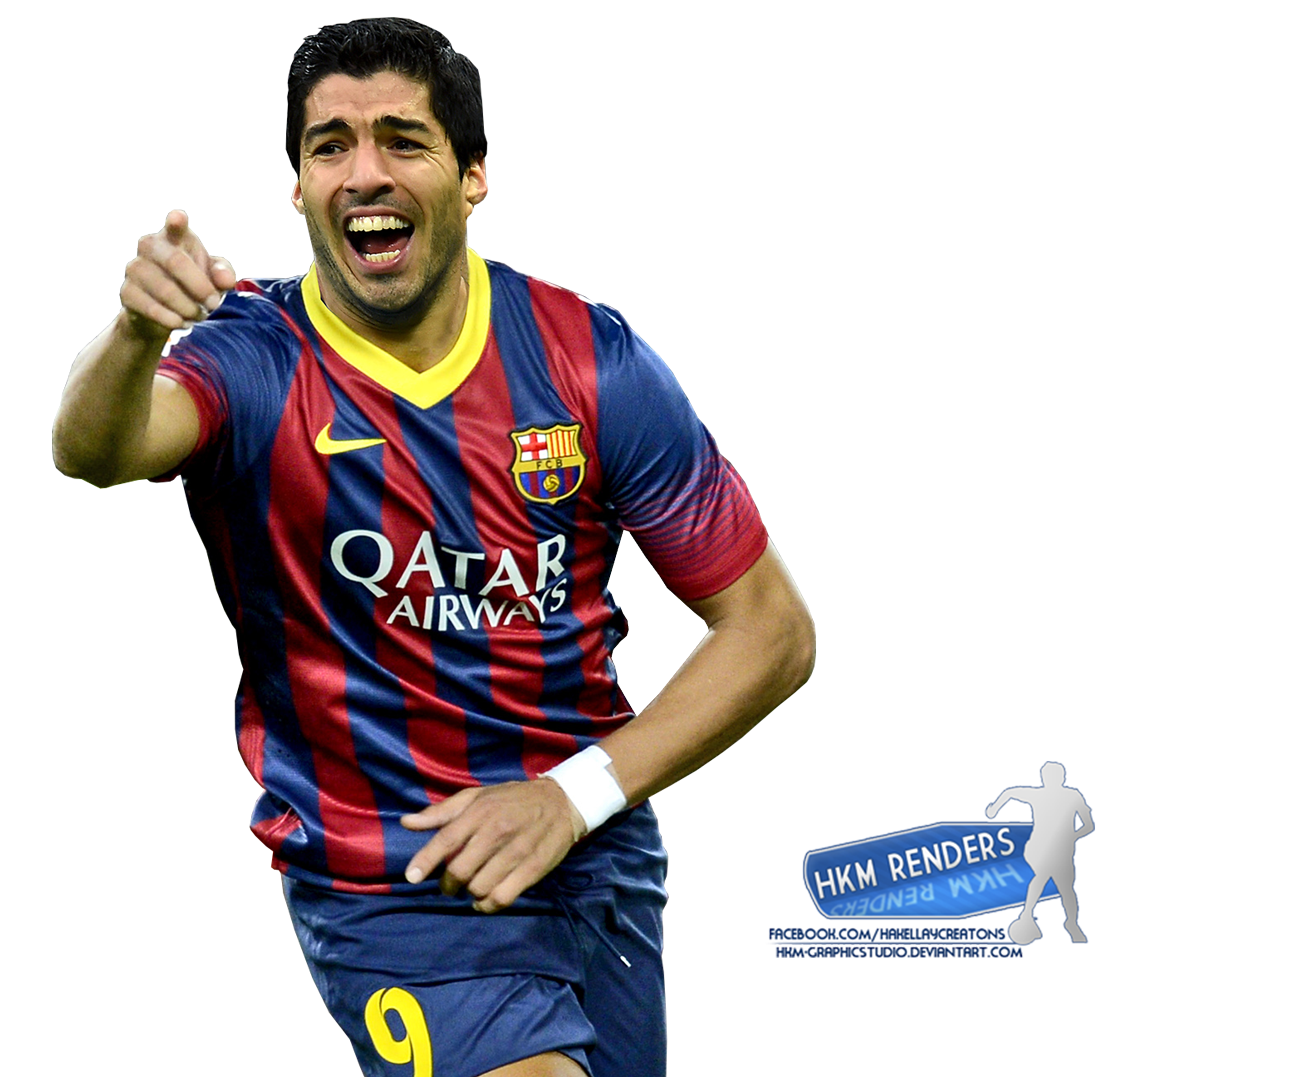 Luis Suarez FCBarcelona by HkM GraphicStudio 1300x1077